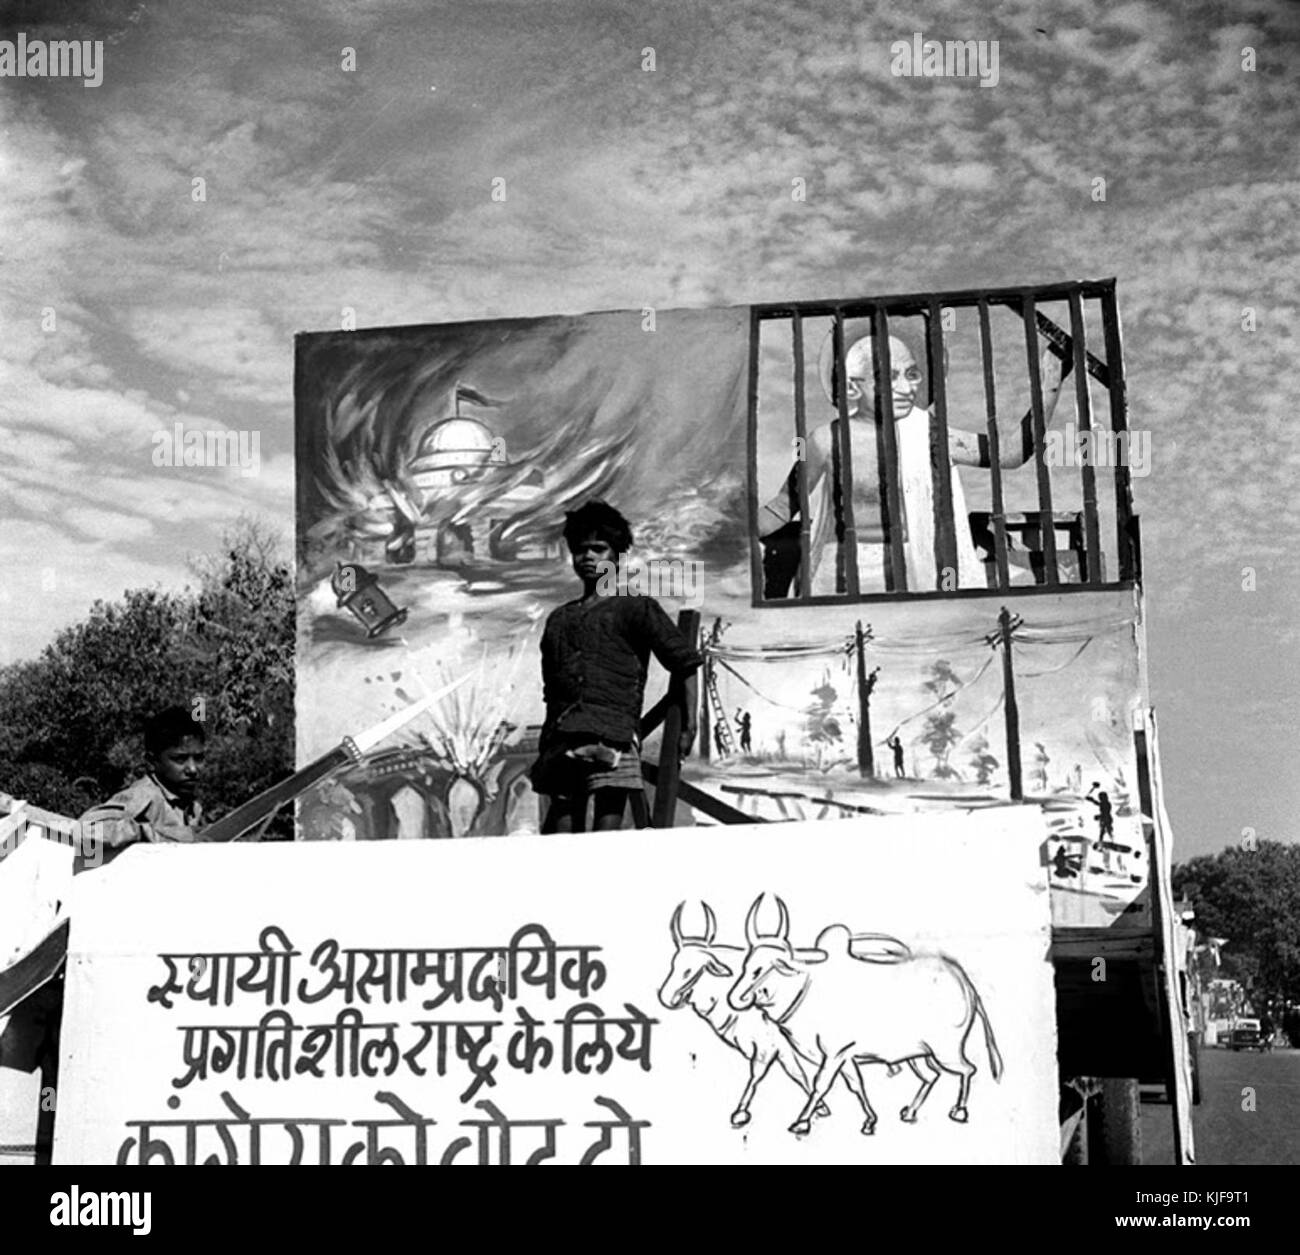 A rear view of a Congress election procession depicting landmarks in the Indian independence movement - Stock Image